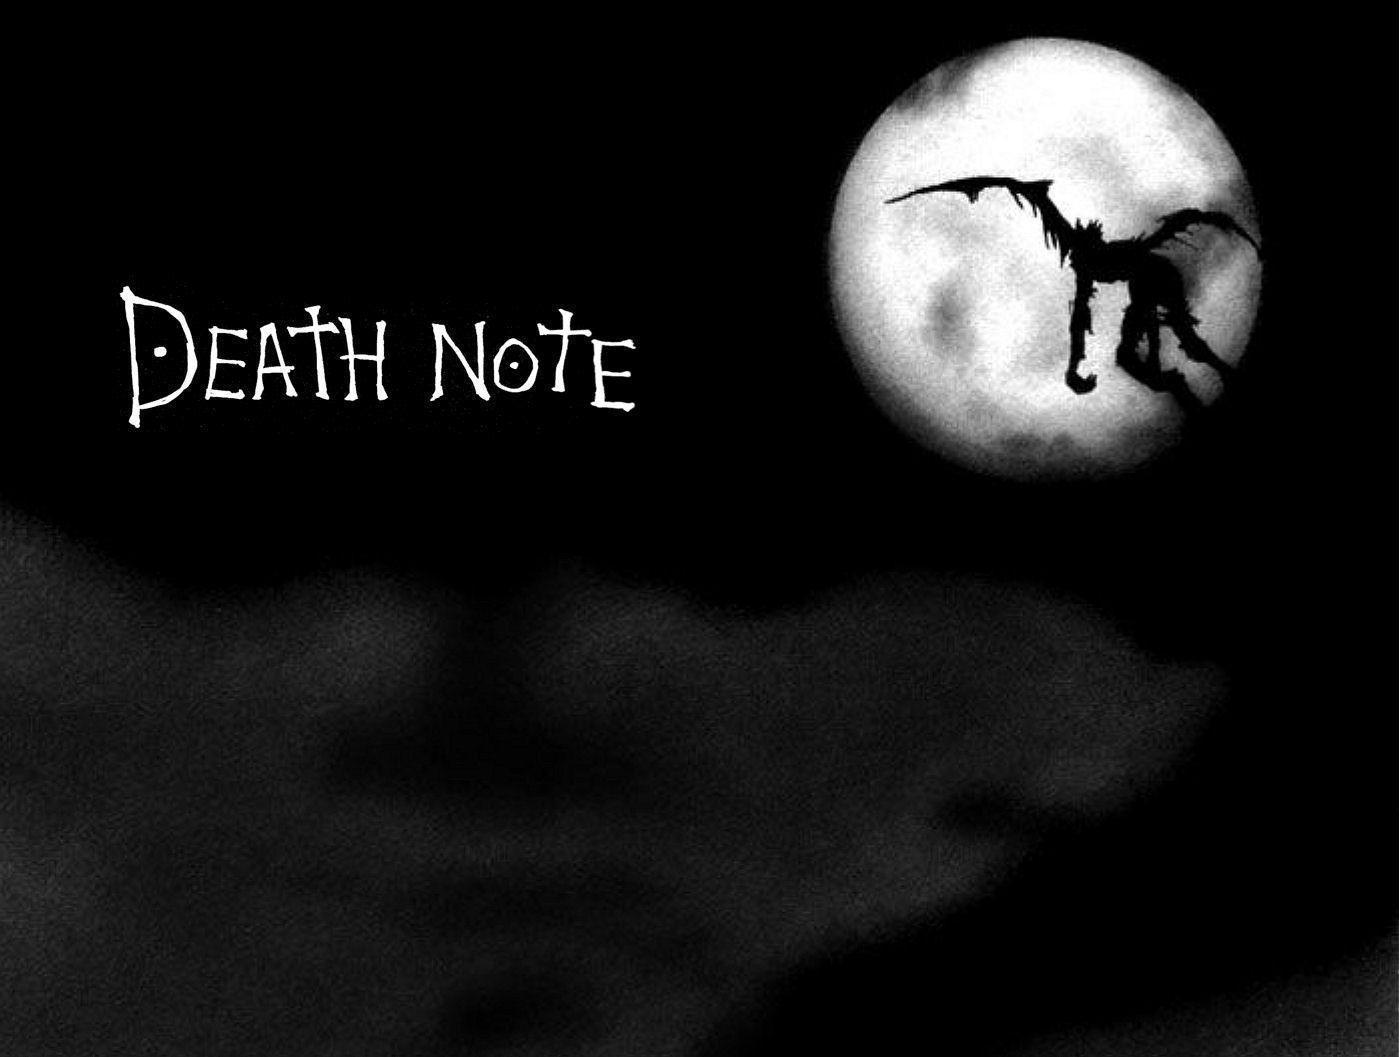 Wallpapers For > Death Note Book Wallpaper Hd